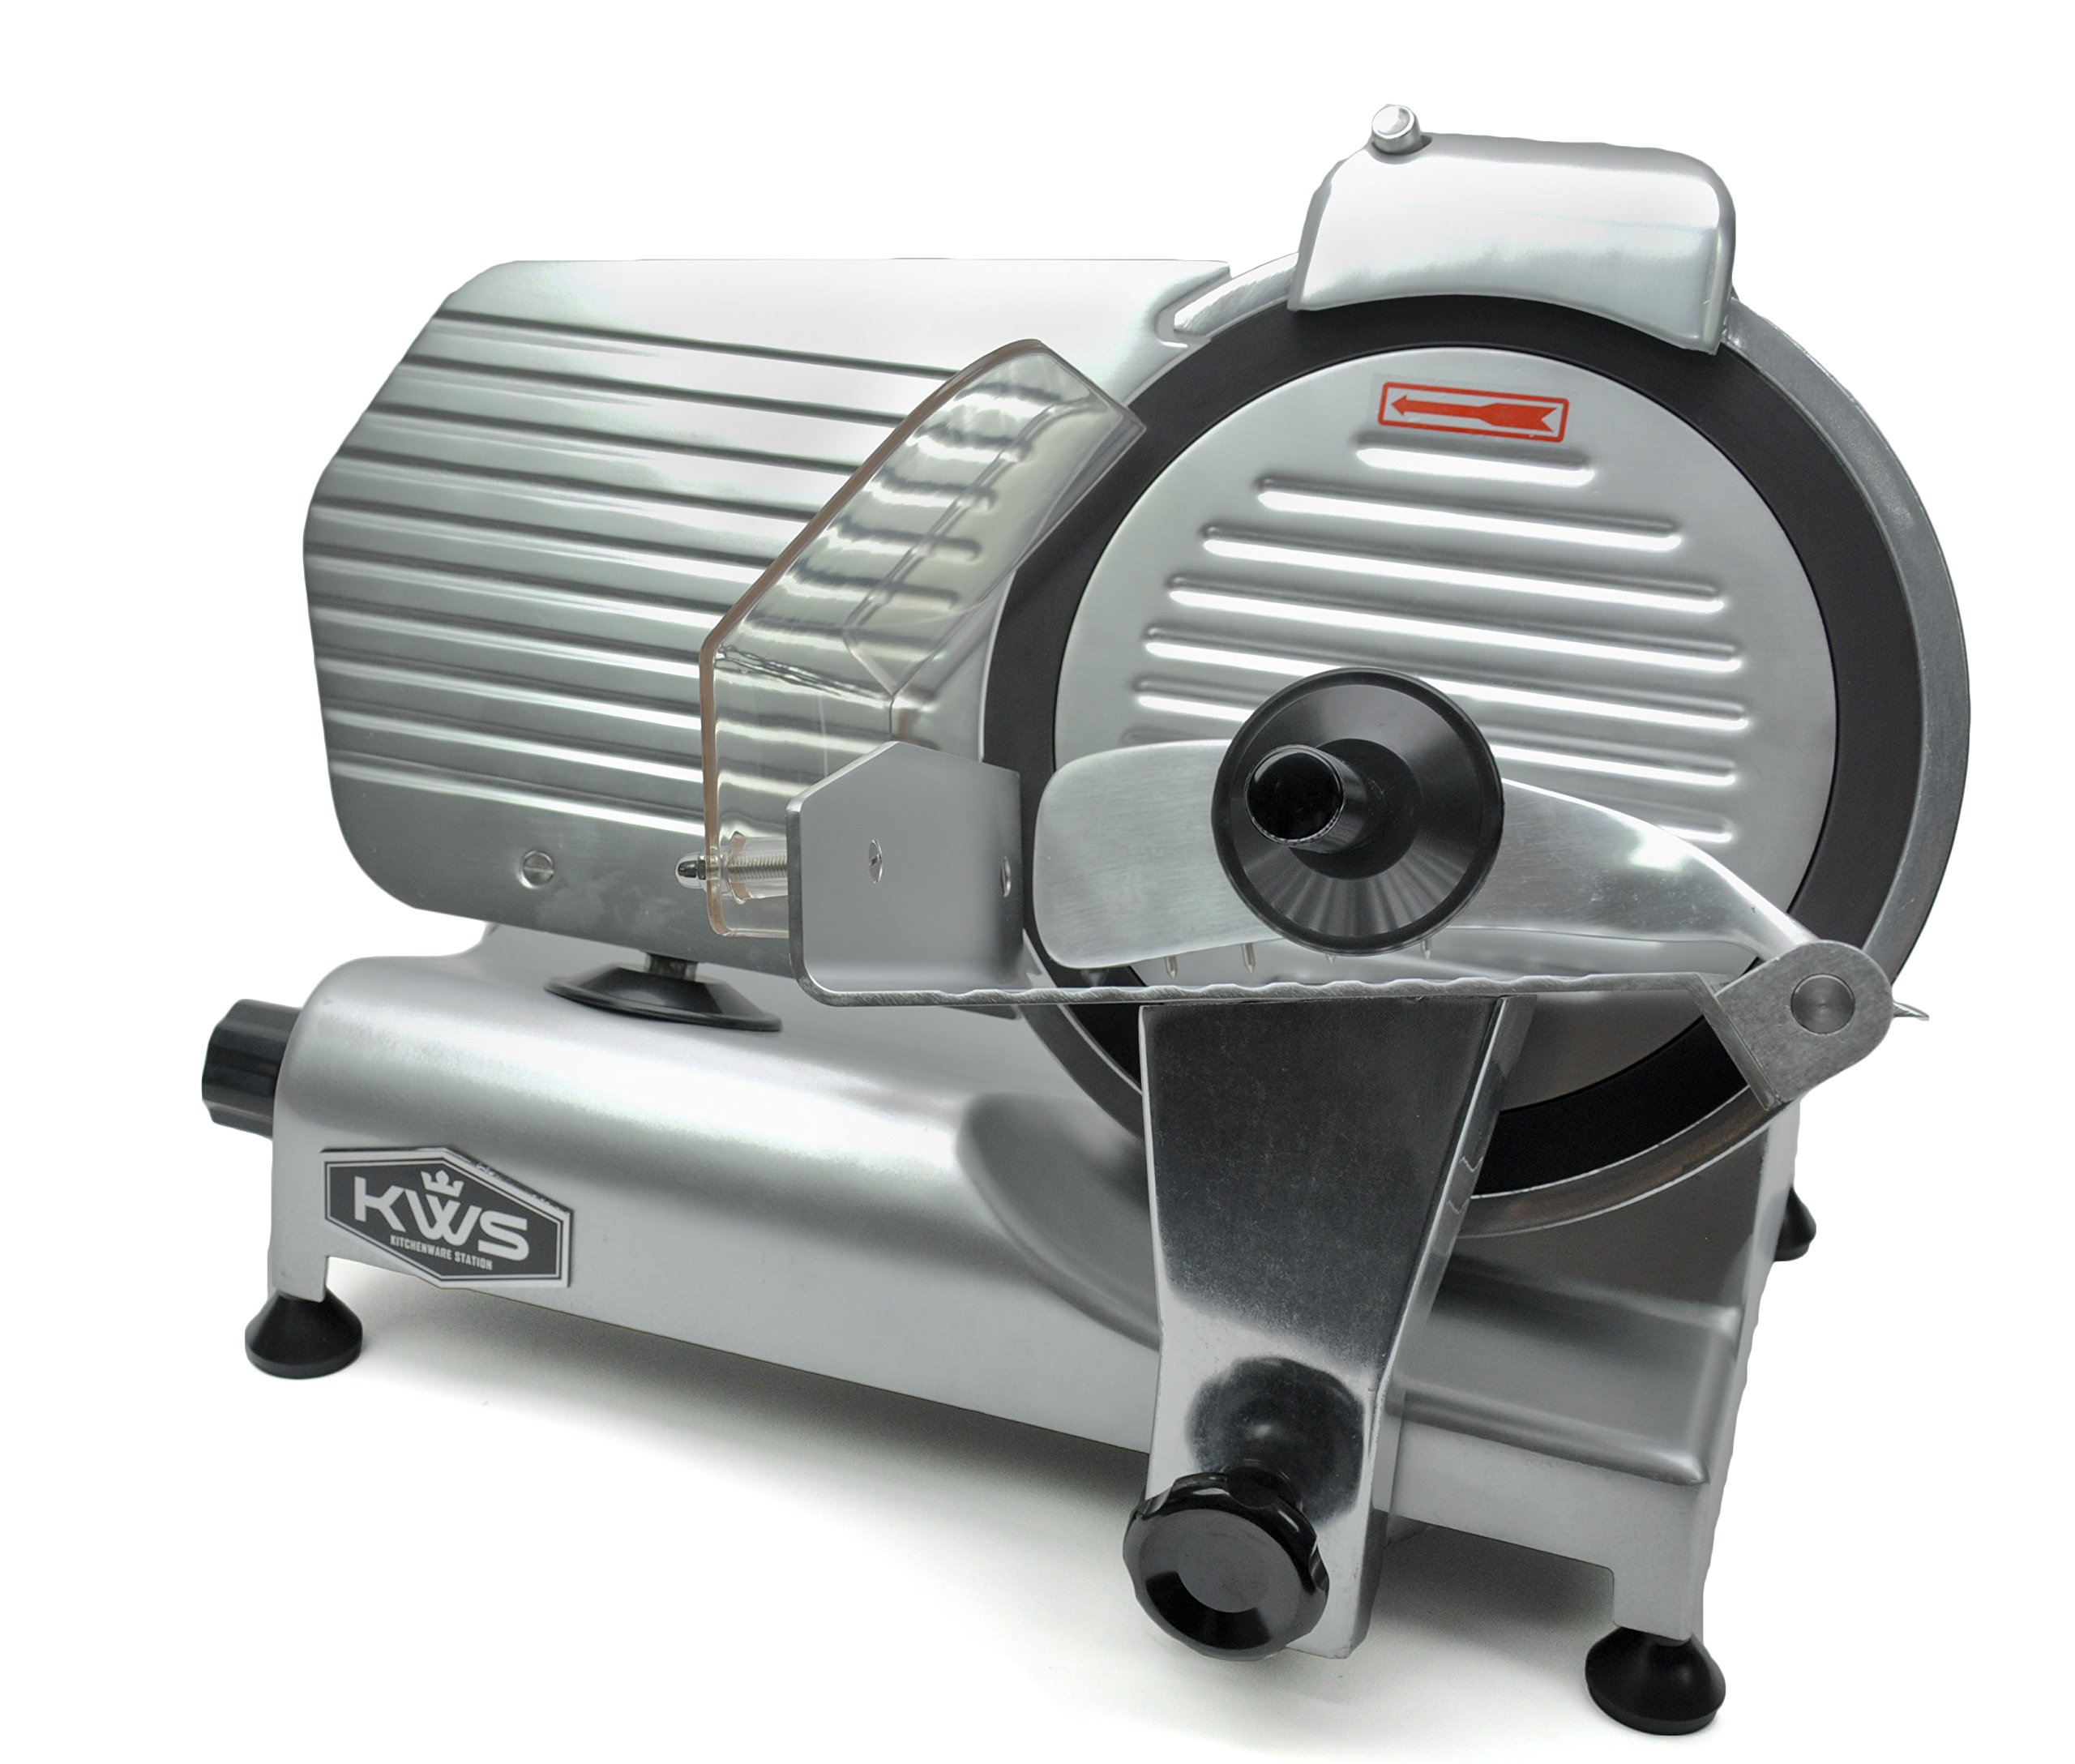 KWS Commercial 320w Electric Meat Slicer 10'' Frozen Meat Deli Slicer Coffee Shop/restaurant and Home Use Low Noises (Teflon Blade--Back)